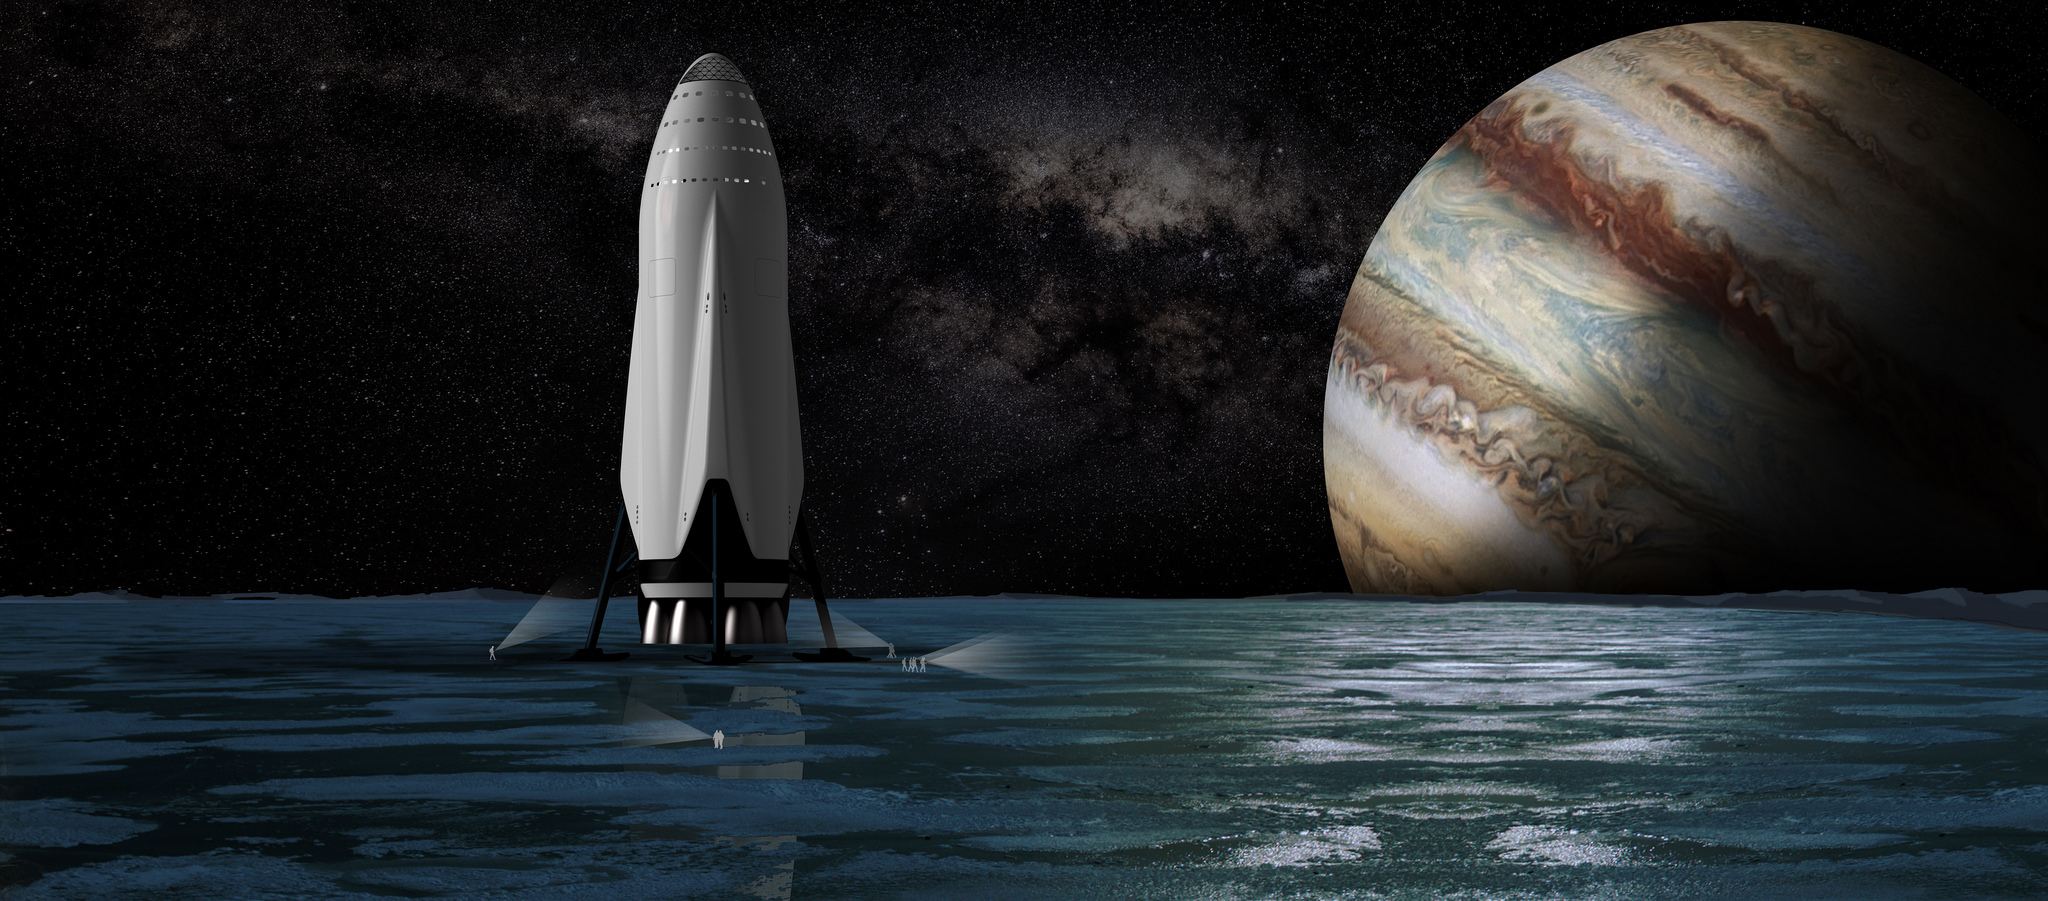 SpaceX's Mars Spaceship Could Explore the Entire Solar System, Elon Musk Says